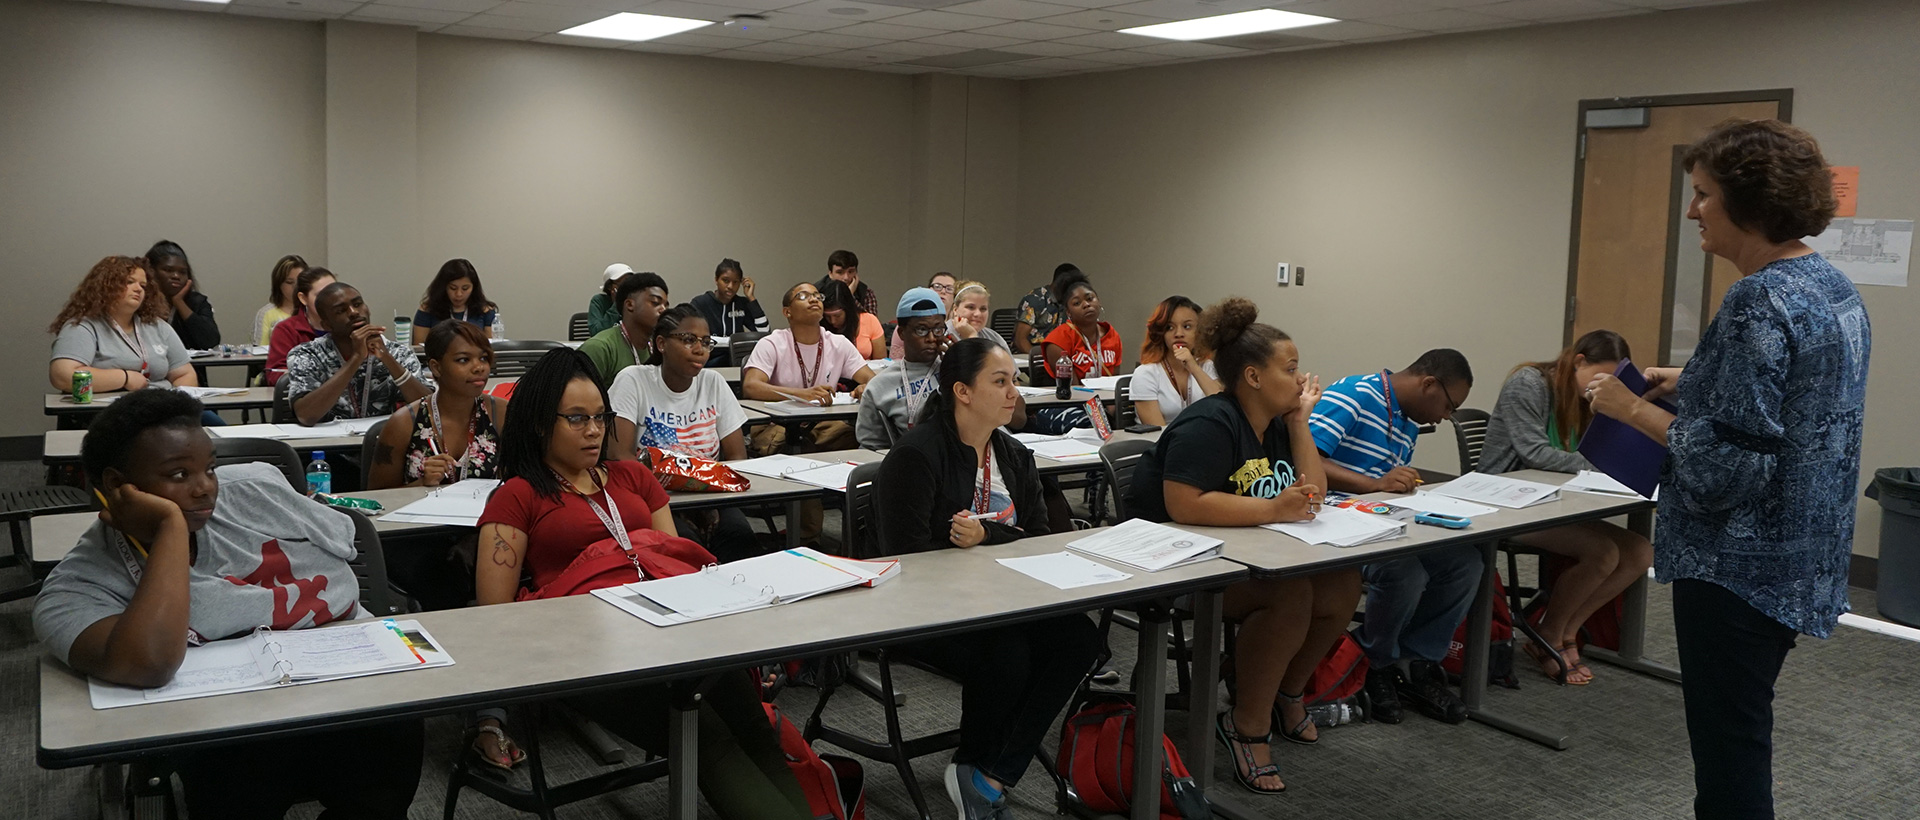 Youth experiencing college life first hand during a six week summer academy.